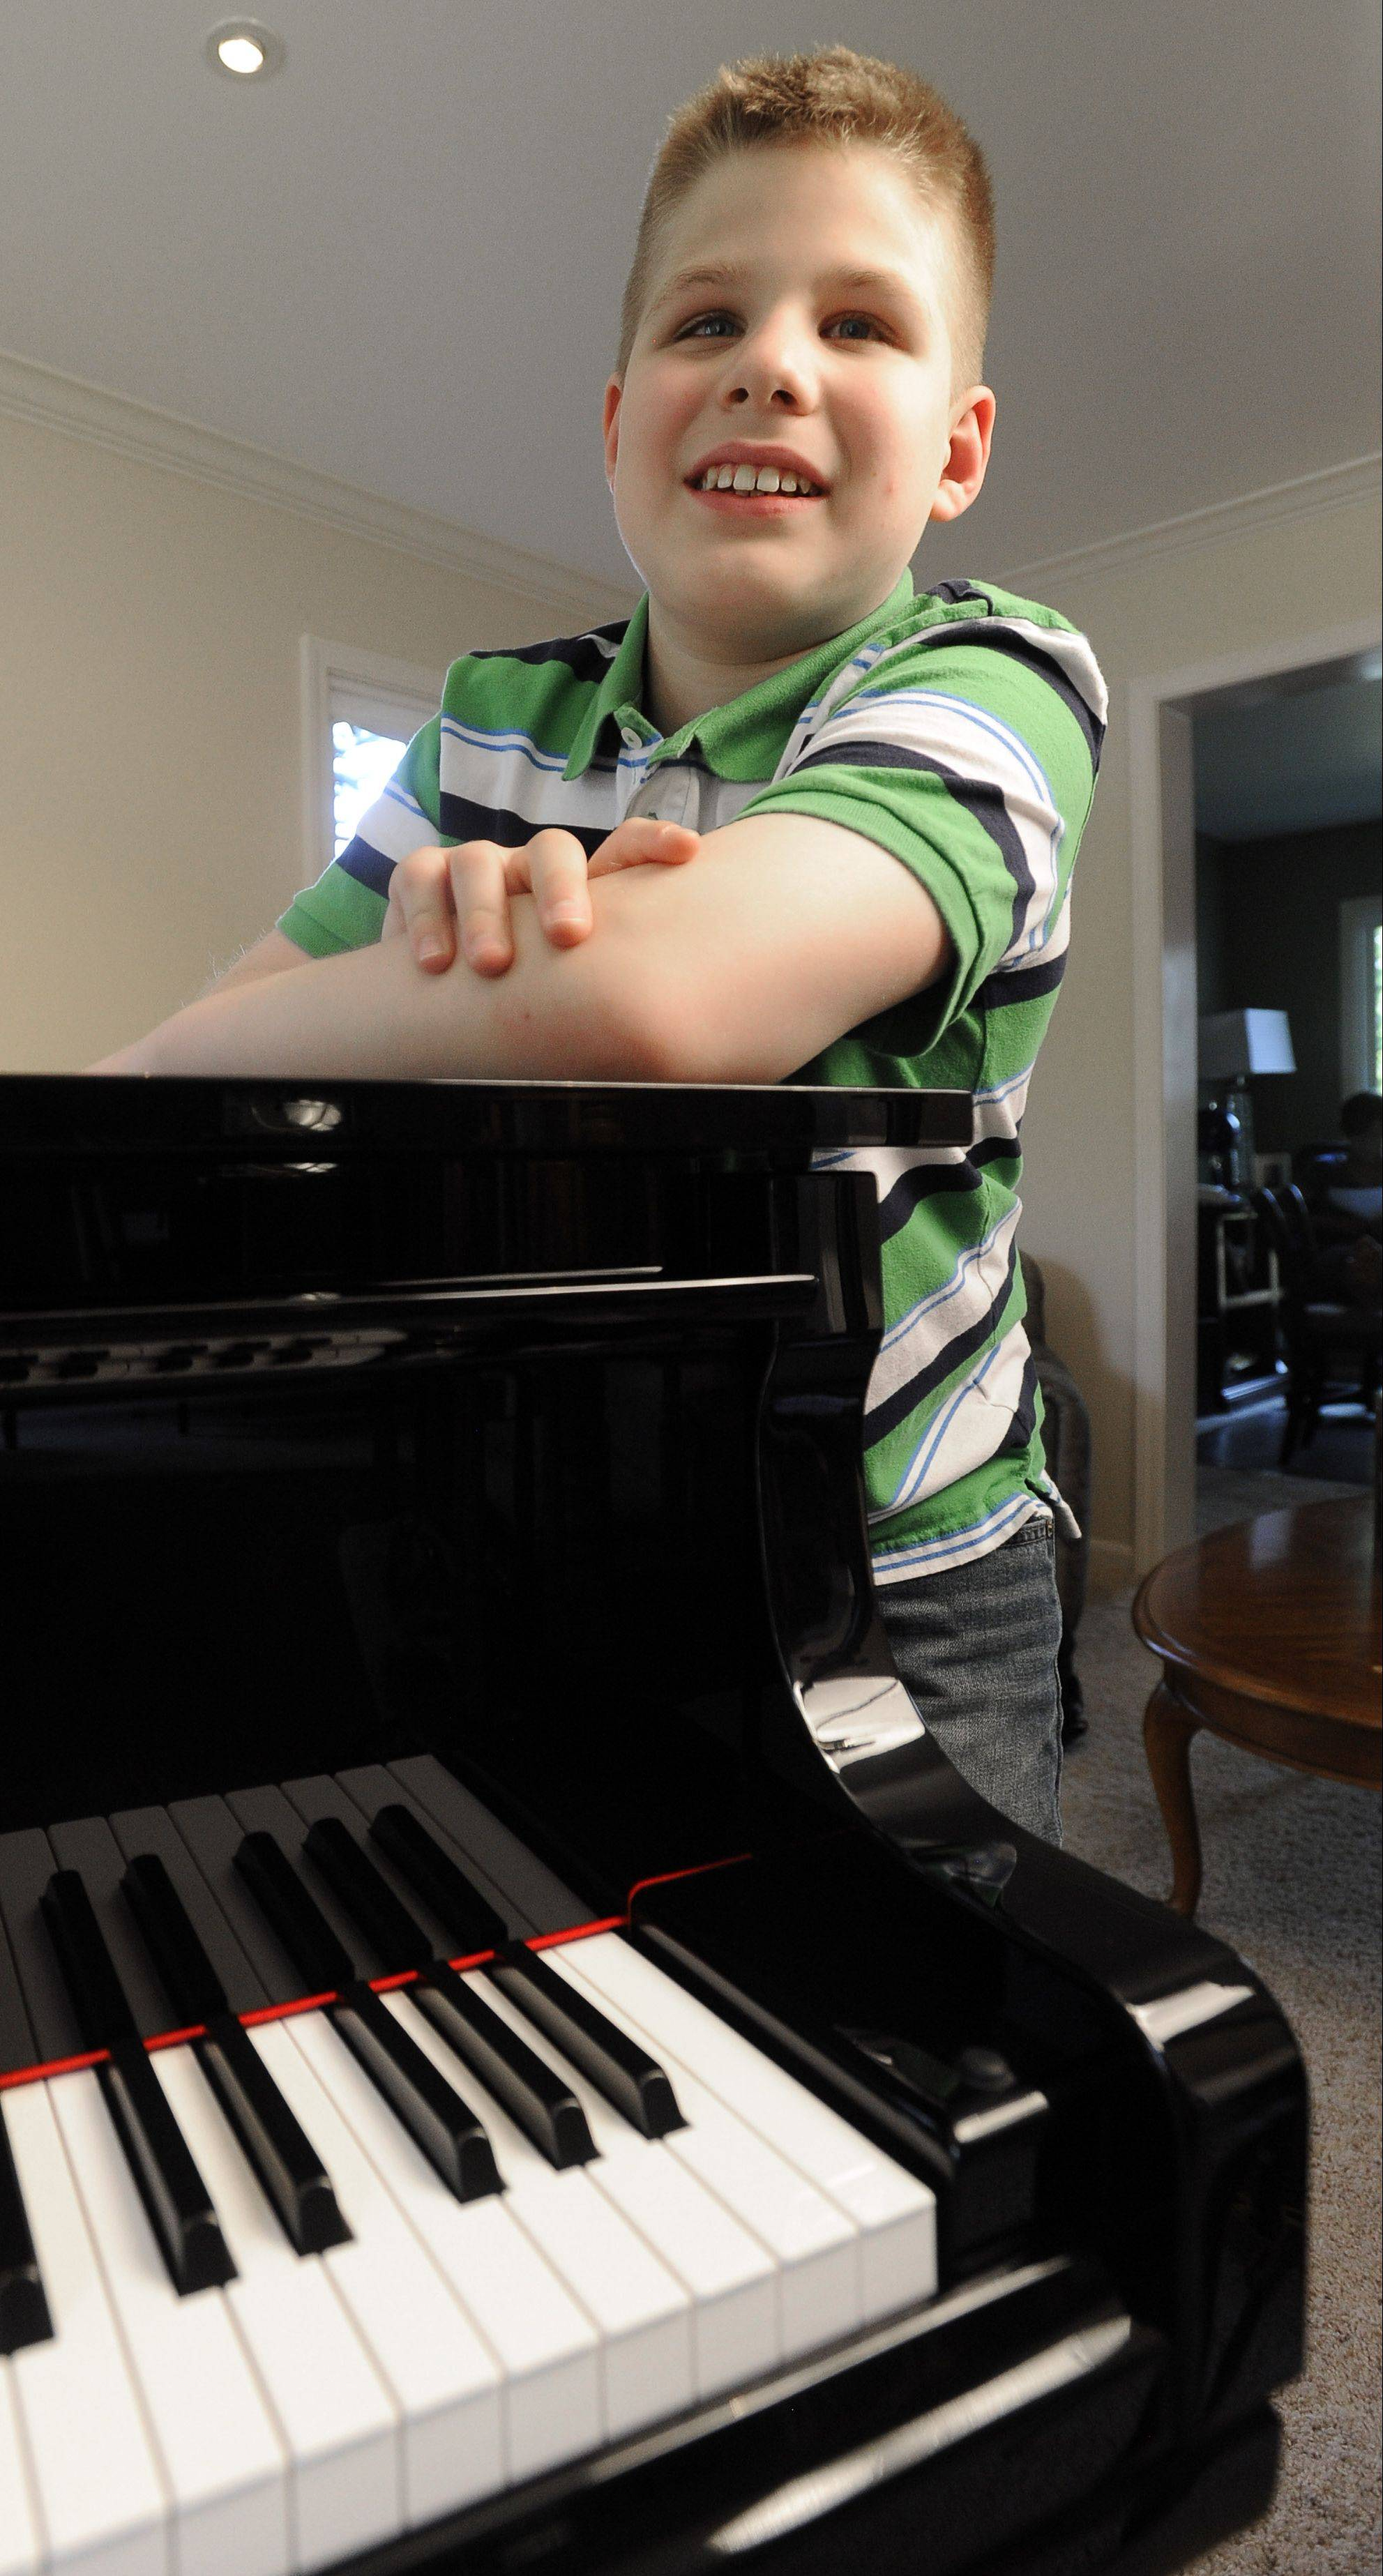 Elk Grove Village 12-year-old Jack Falejczyk has surprised teachers with his musical skills, obtained without being able to see what others do. His perfect pitch was noticed in his toddler days.